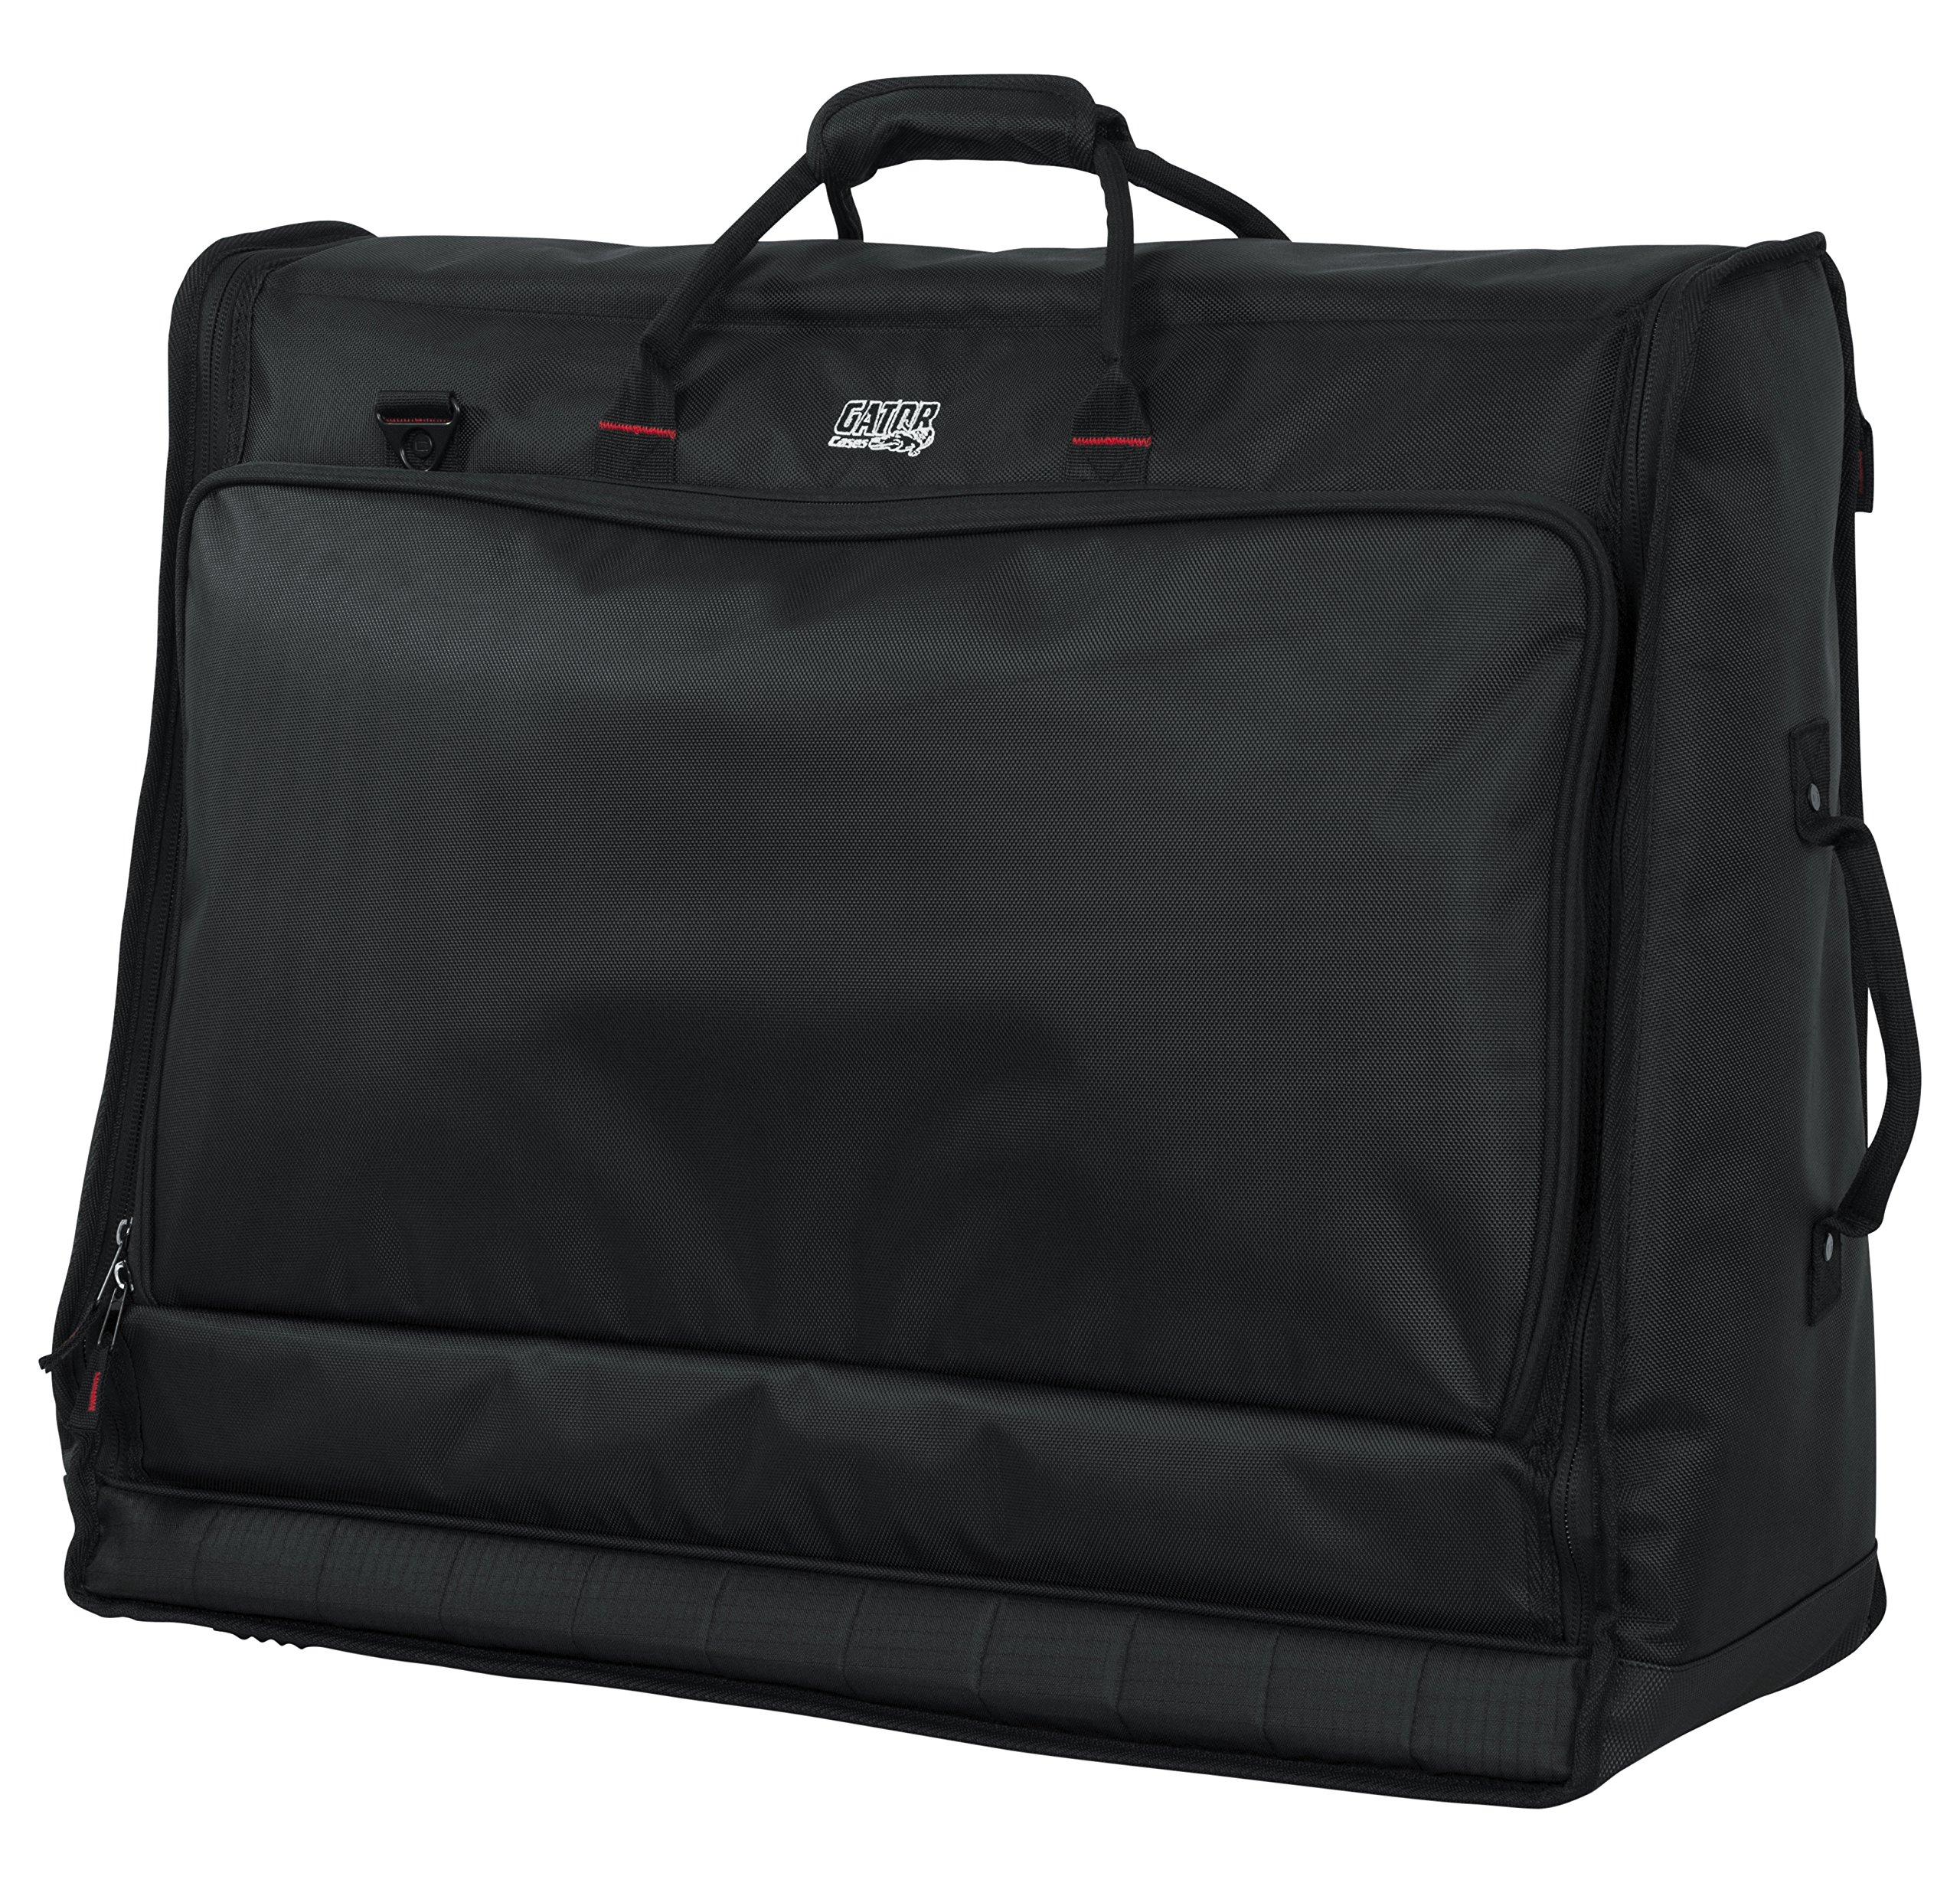 Gator Cases Padded Large Format Mixer Carry Bag; Fits Mixers Such as Behringer X32 Compact |26'' x 21'' x 8.5'' (G-MIXERBAG-2621)